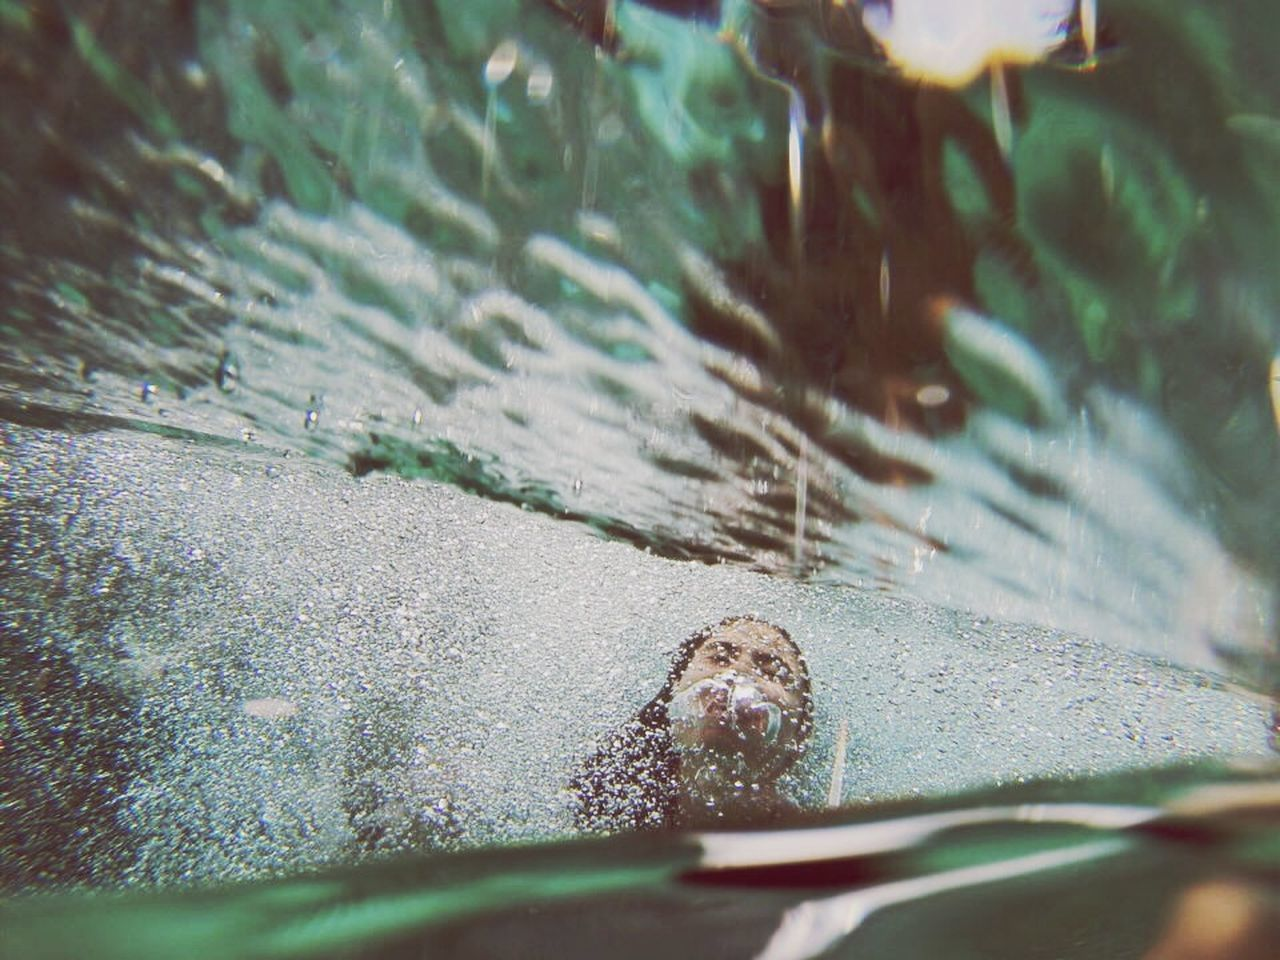 nature, close-up, one animal, selective focus, day, no people, water, outdoors, animal themes, leaf, animals in the wild, beauty in nature, fragility, undersea